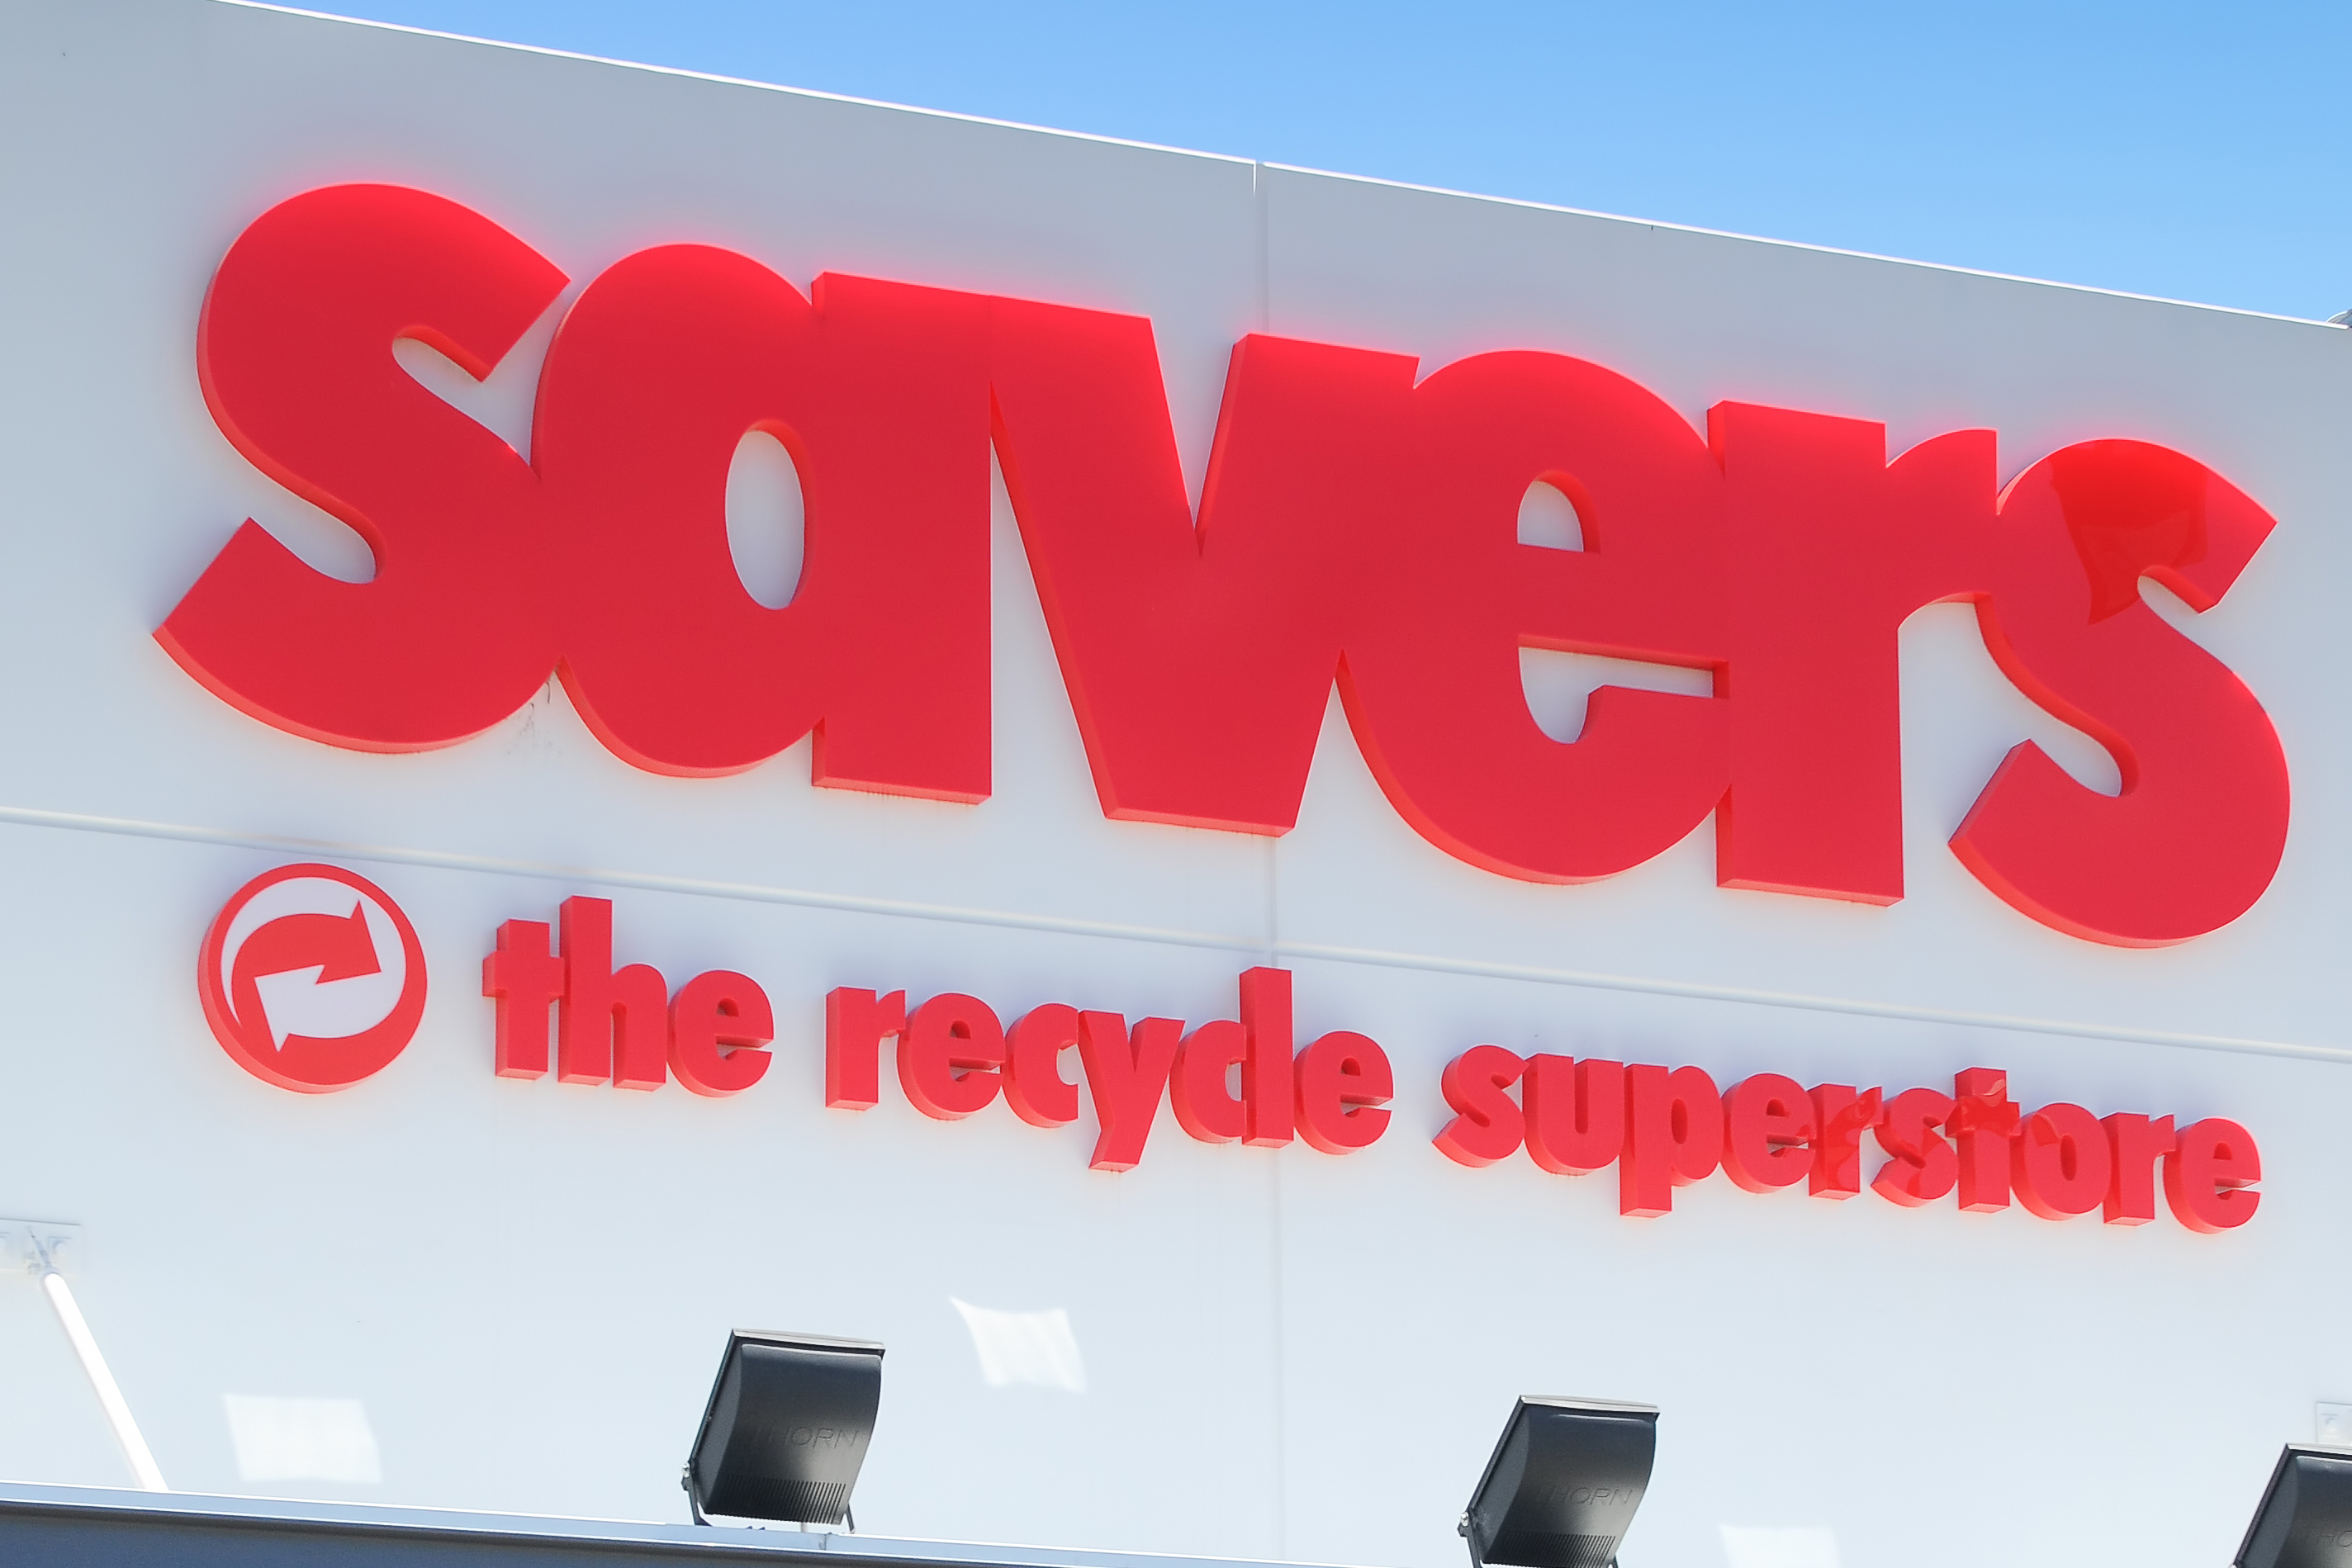 Savers Recycle Superstore